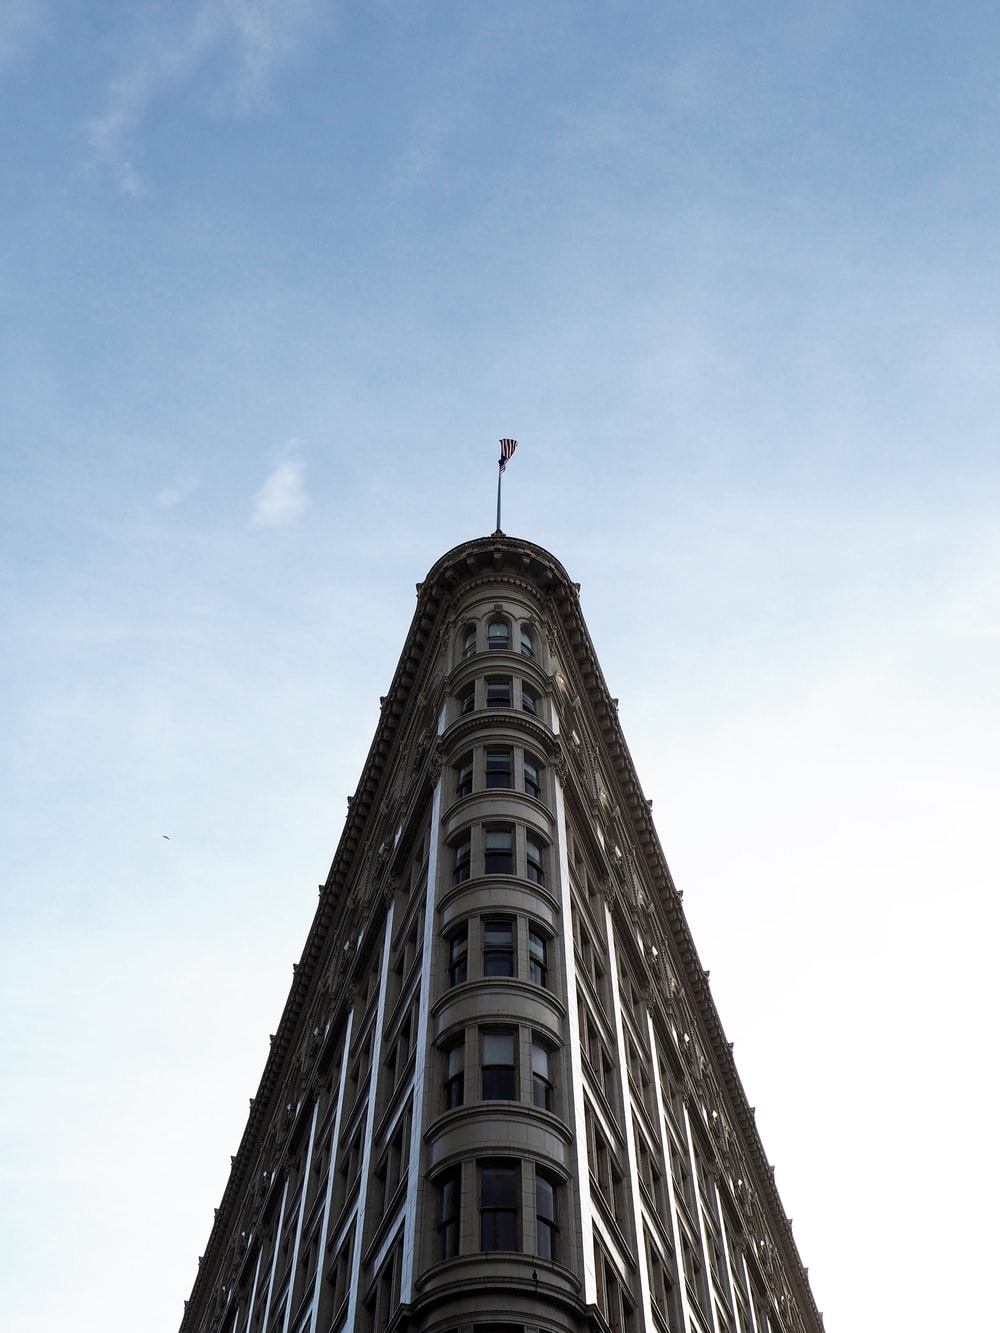 Flatiron in New York City under white and blue sky